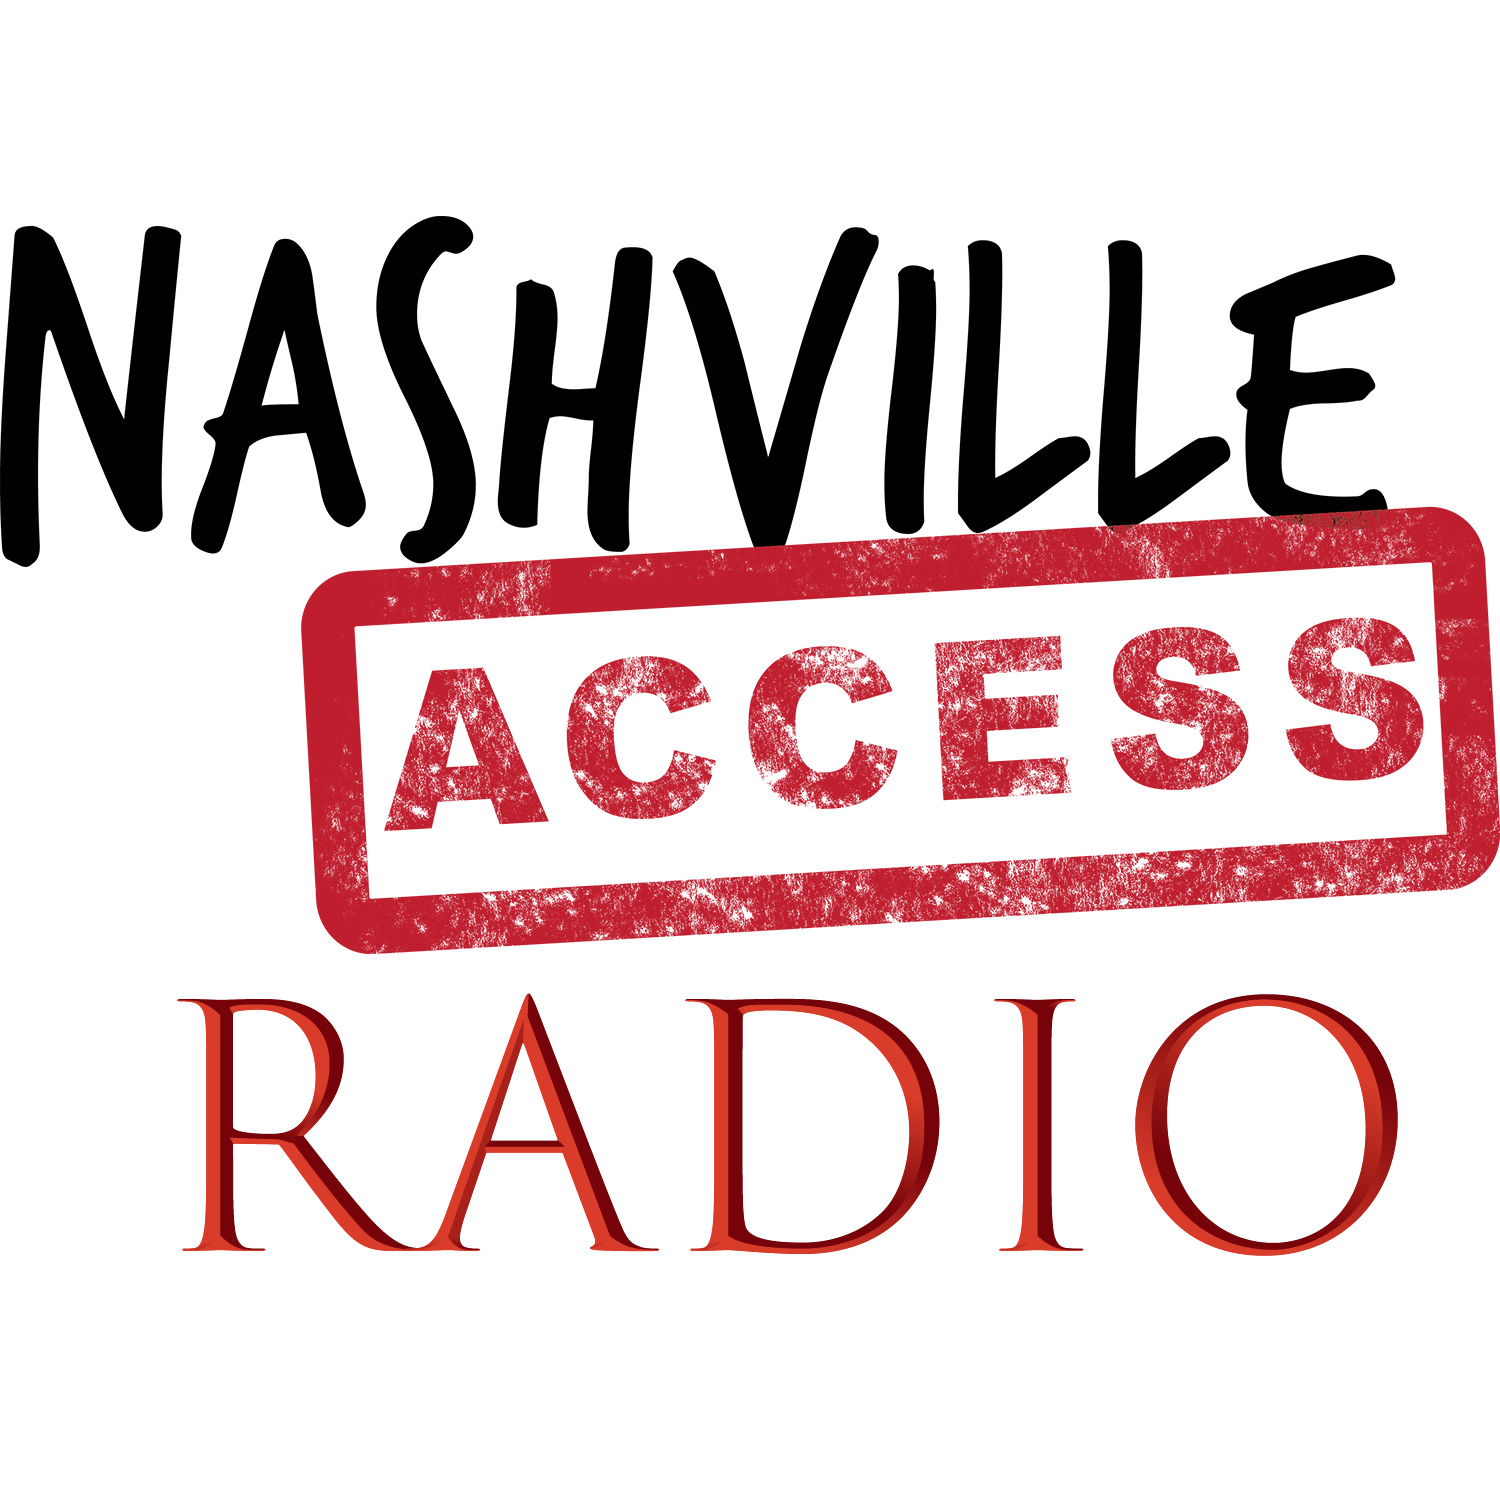 "The Radio Show    The Nashville Access radio show was launched in November of 2015, with the goal of ""Delivering Nashville to the World.""  We hit the air with 22 radio stations in 3 countries.  By May of 2018, Nashville Access is broadcasting in South America, Central America, Australia and New Zealand, UK and Europe, Canada and United States. Every week, Dallas and Camo bring you our one-hour radio show featuring interviews with the hottest country stars, our Texas Turnaround (hot Texas artists from the Texas Regional Radio chart), our Nashville Access Super Pick (a hot rising or indie artist), the latest country music news, our Top Three Songs in the World, and all your favorite country hits!"